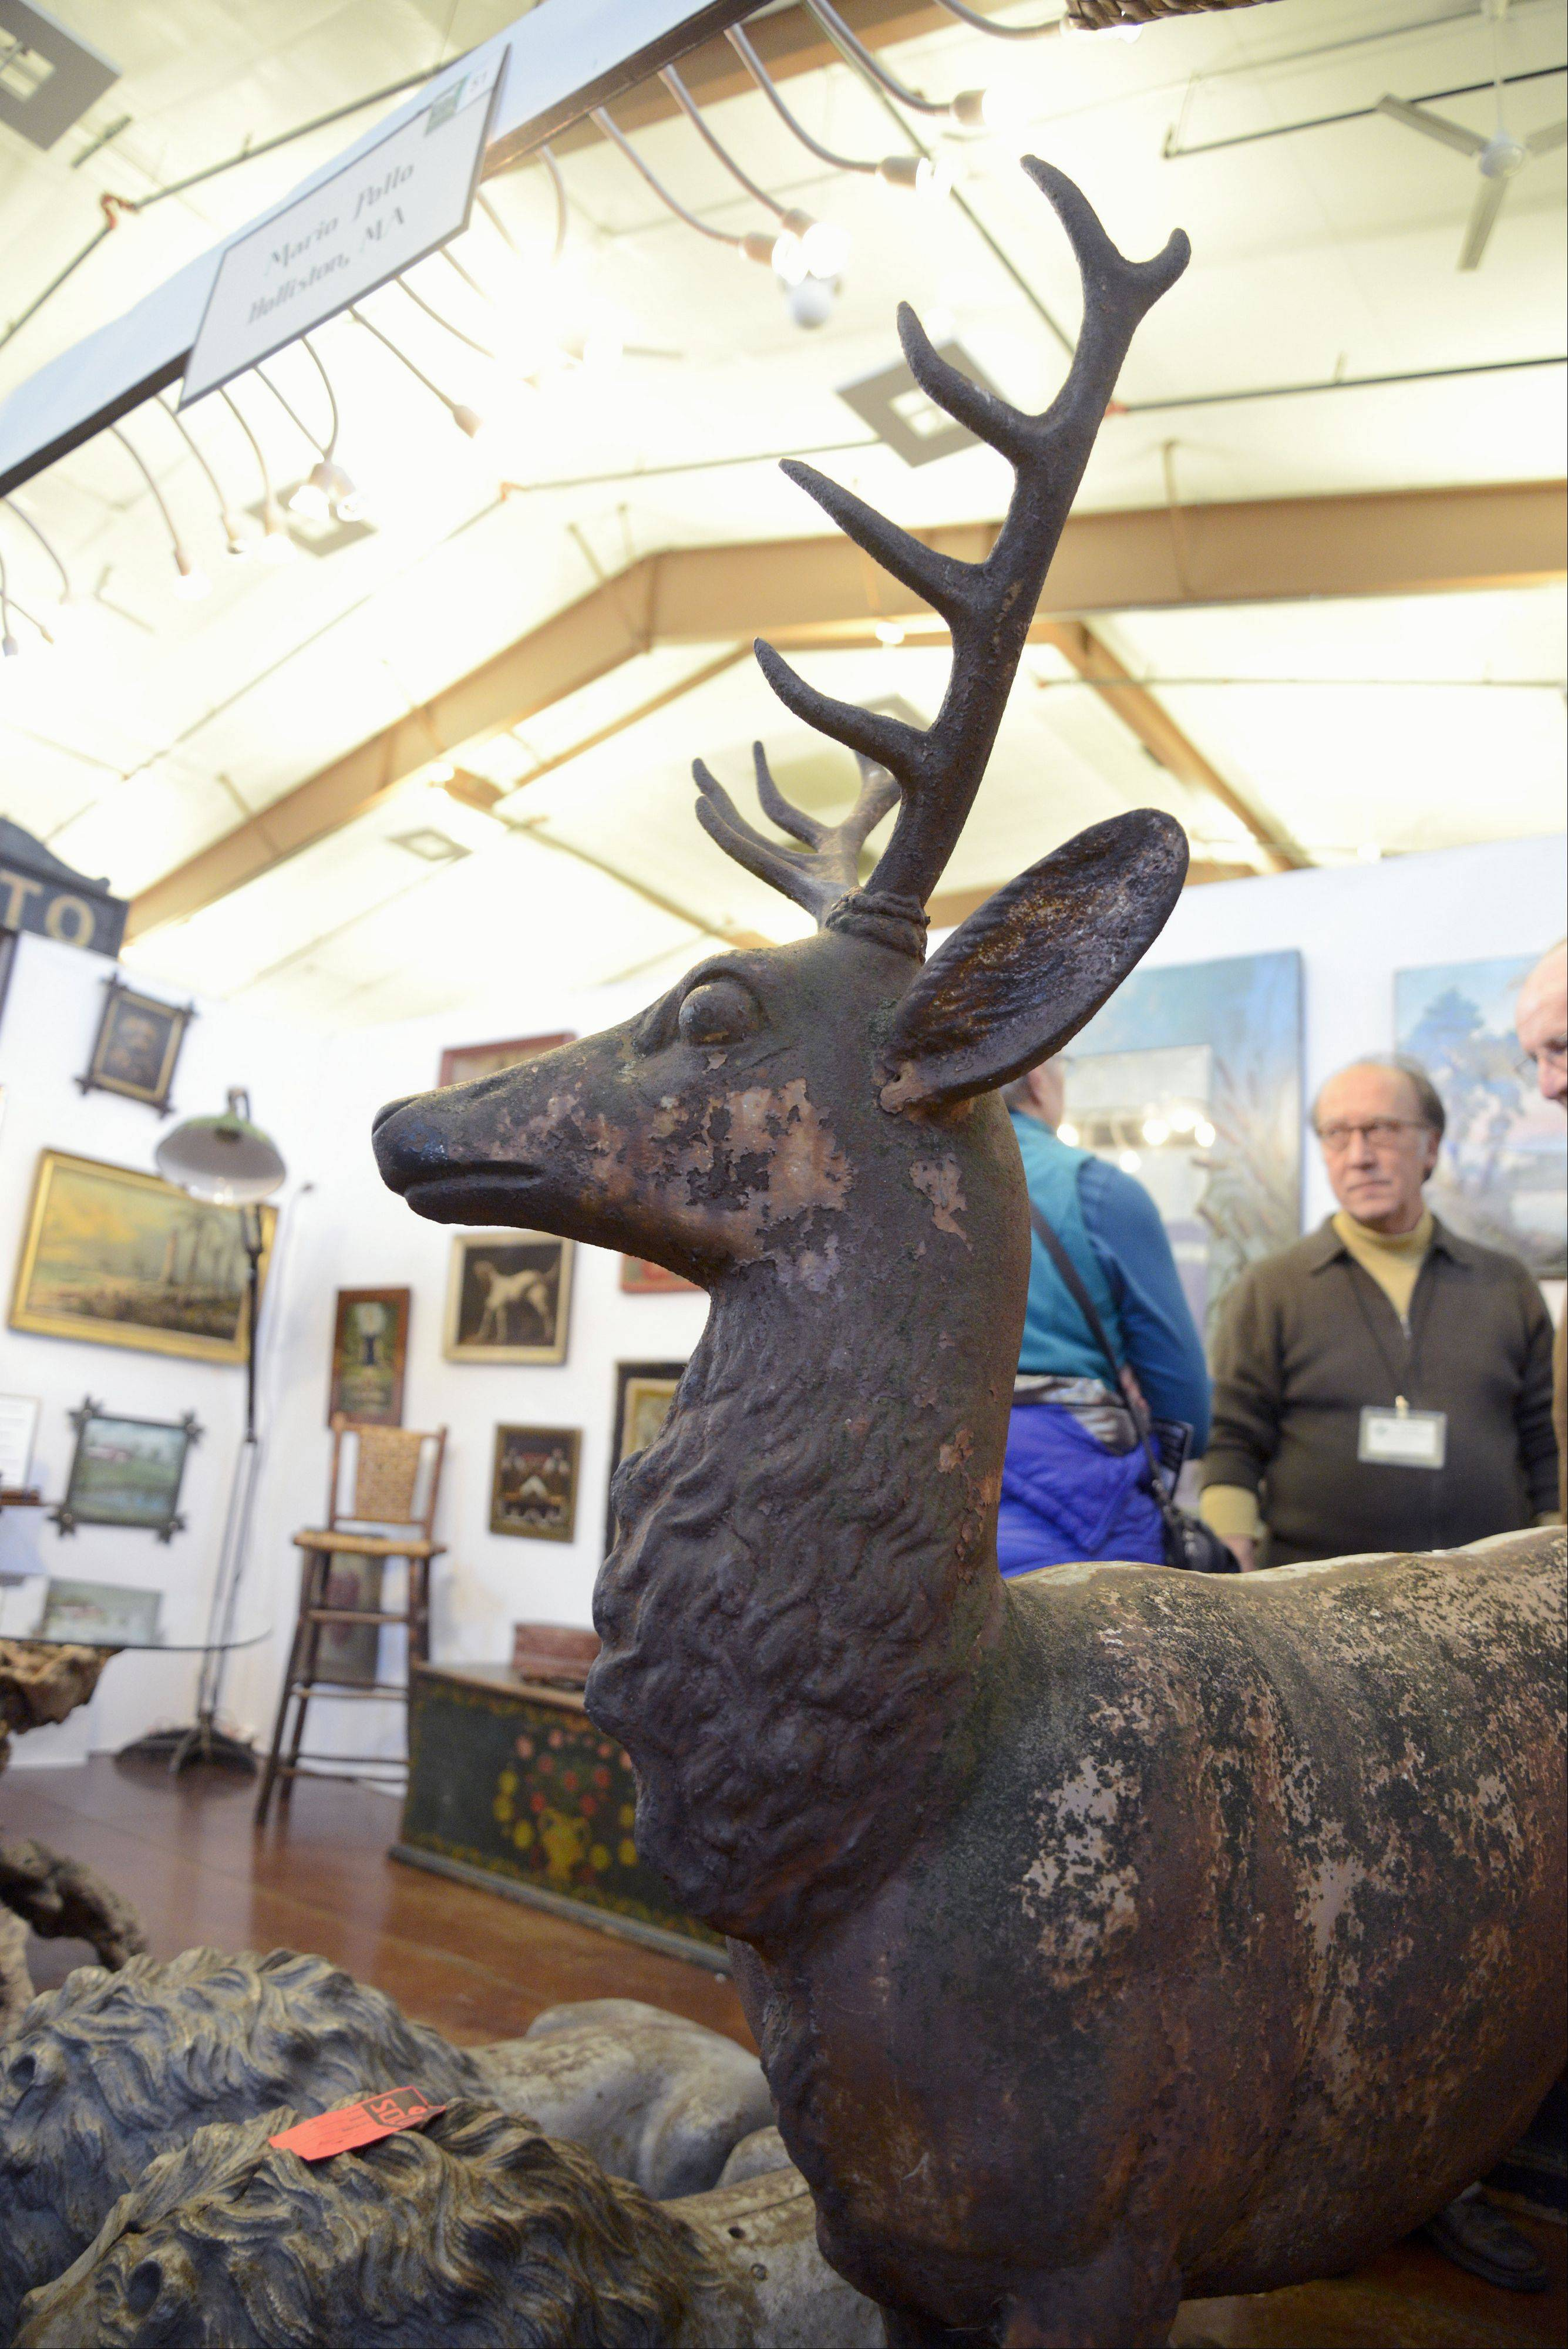 A cast-iron deer statue dating from 1880 by a New York City foundry stands on display in Mario Pollo's booth (from Holliston, Mass.) at the 39th annual Fox Valley Antiques Show at the Kane County Fairgrounds. Fifty-five dealers from 17 states participate in the show, which is by invitation only and continues Sunday.